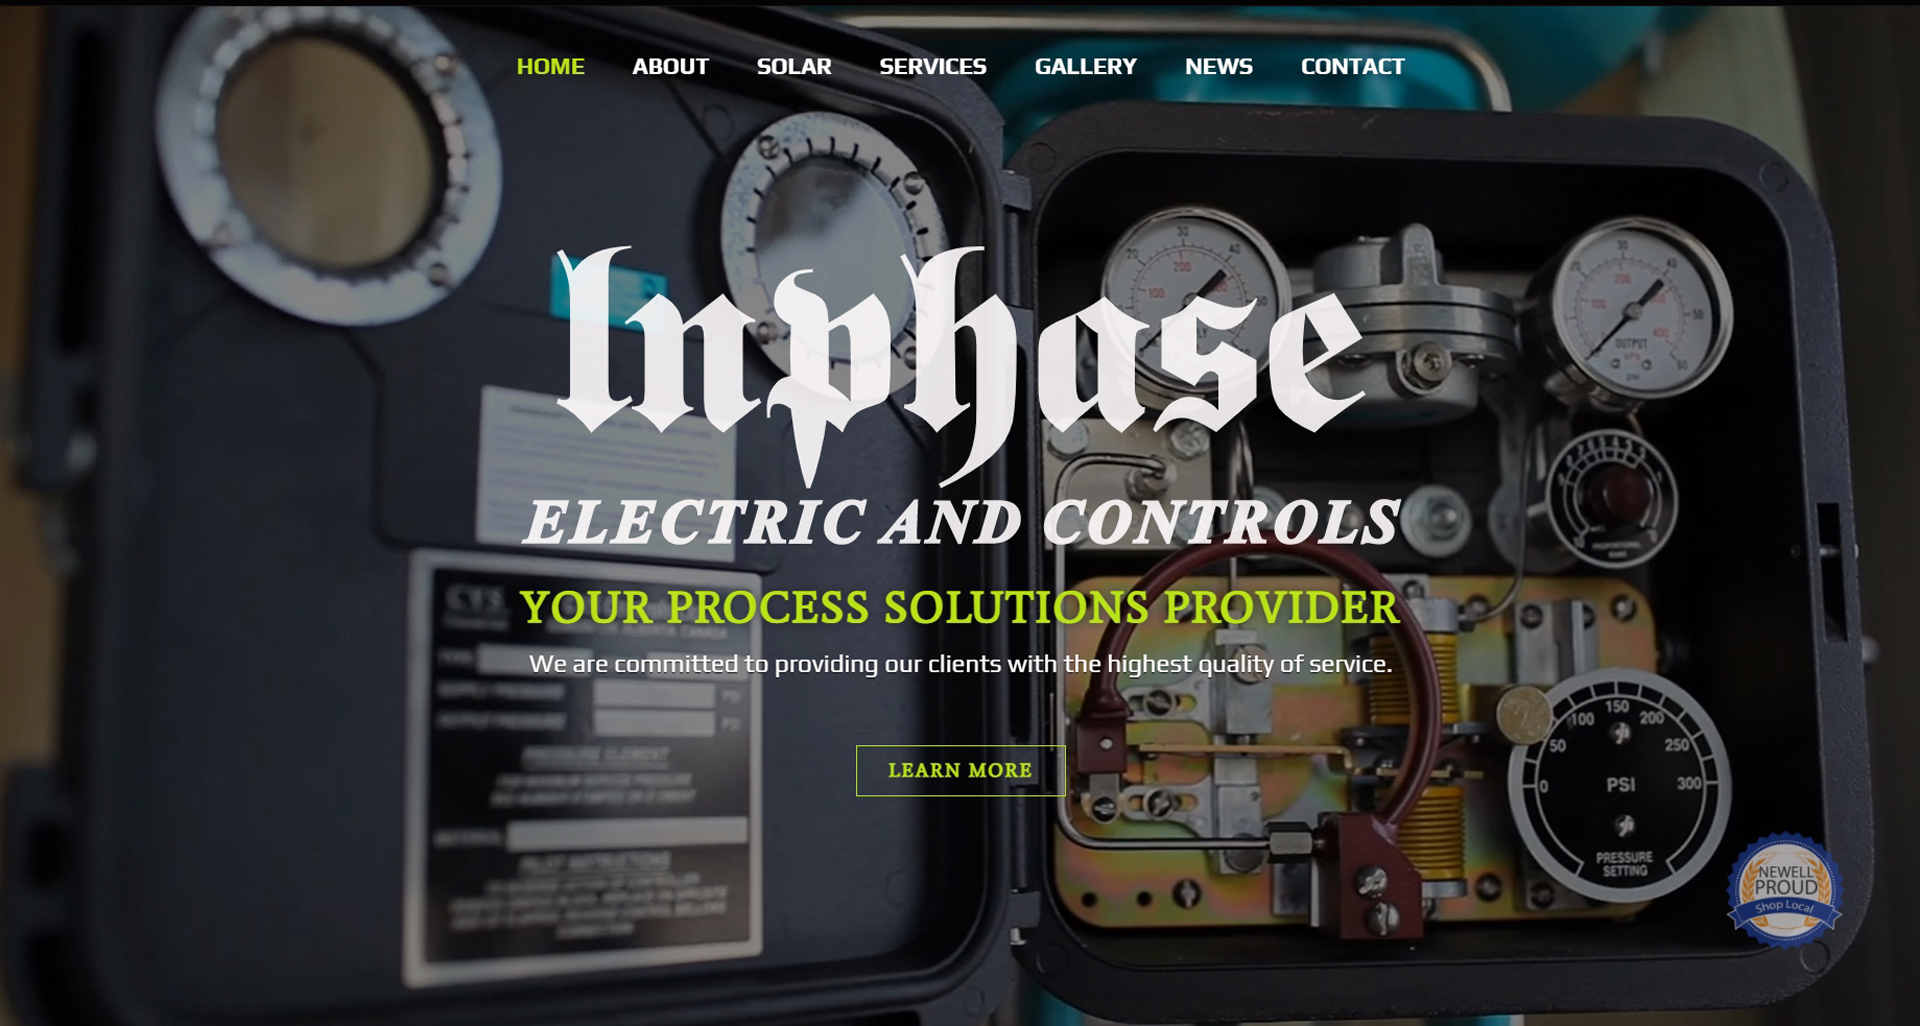 The New, Improved and Neon Website for Inphase Electric and Controls